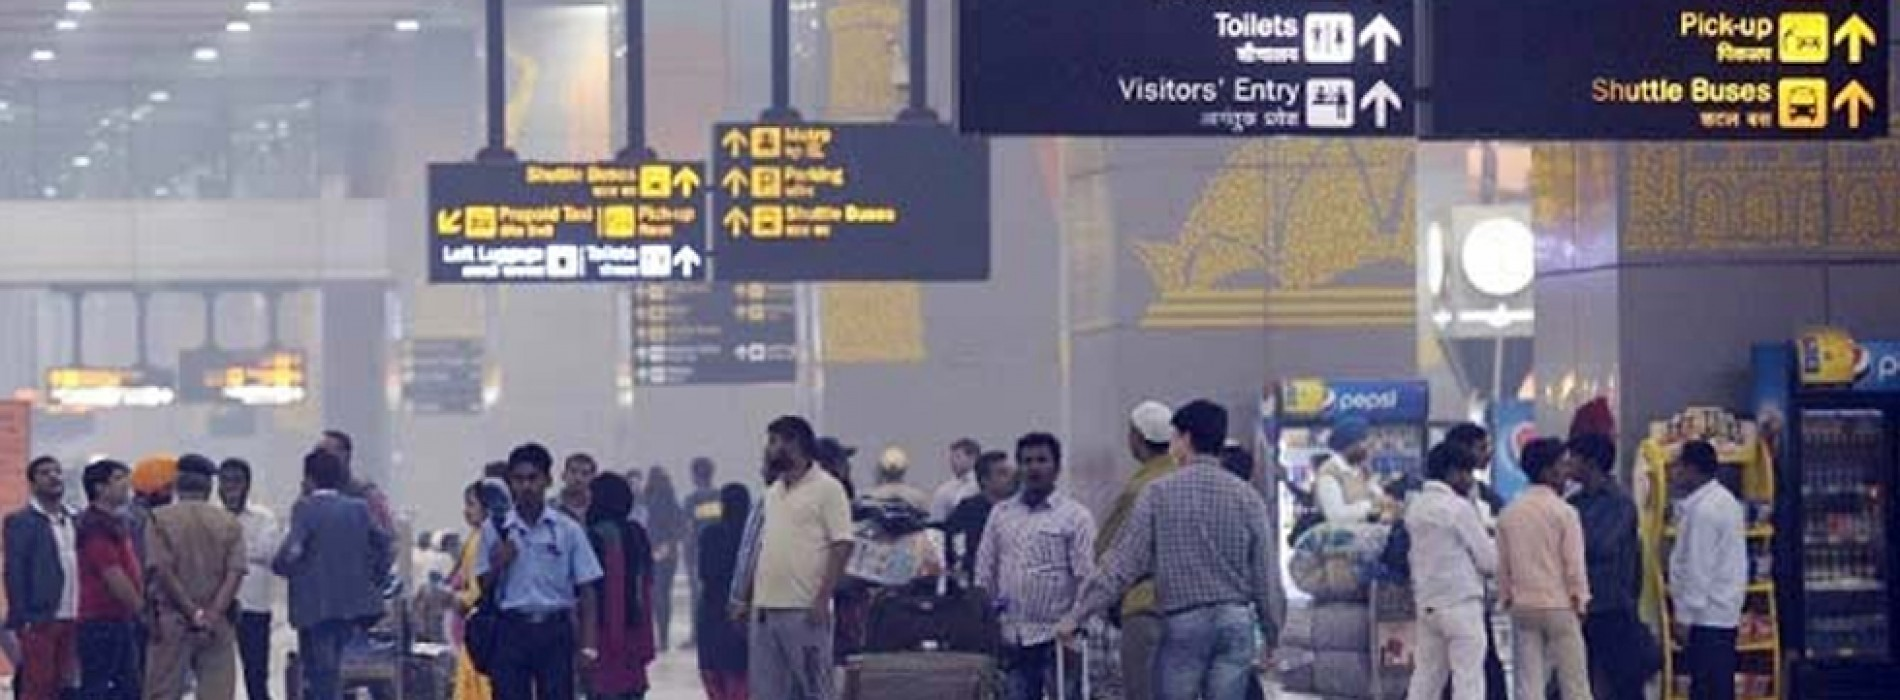 Indian airports face capacity crunch as aviation market booms